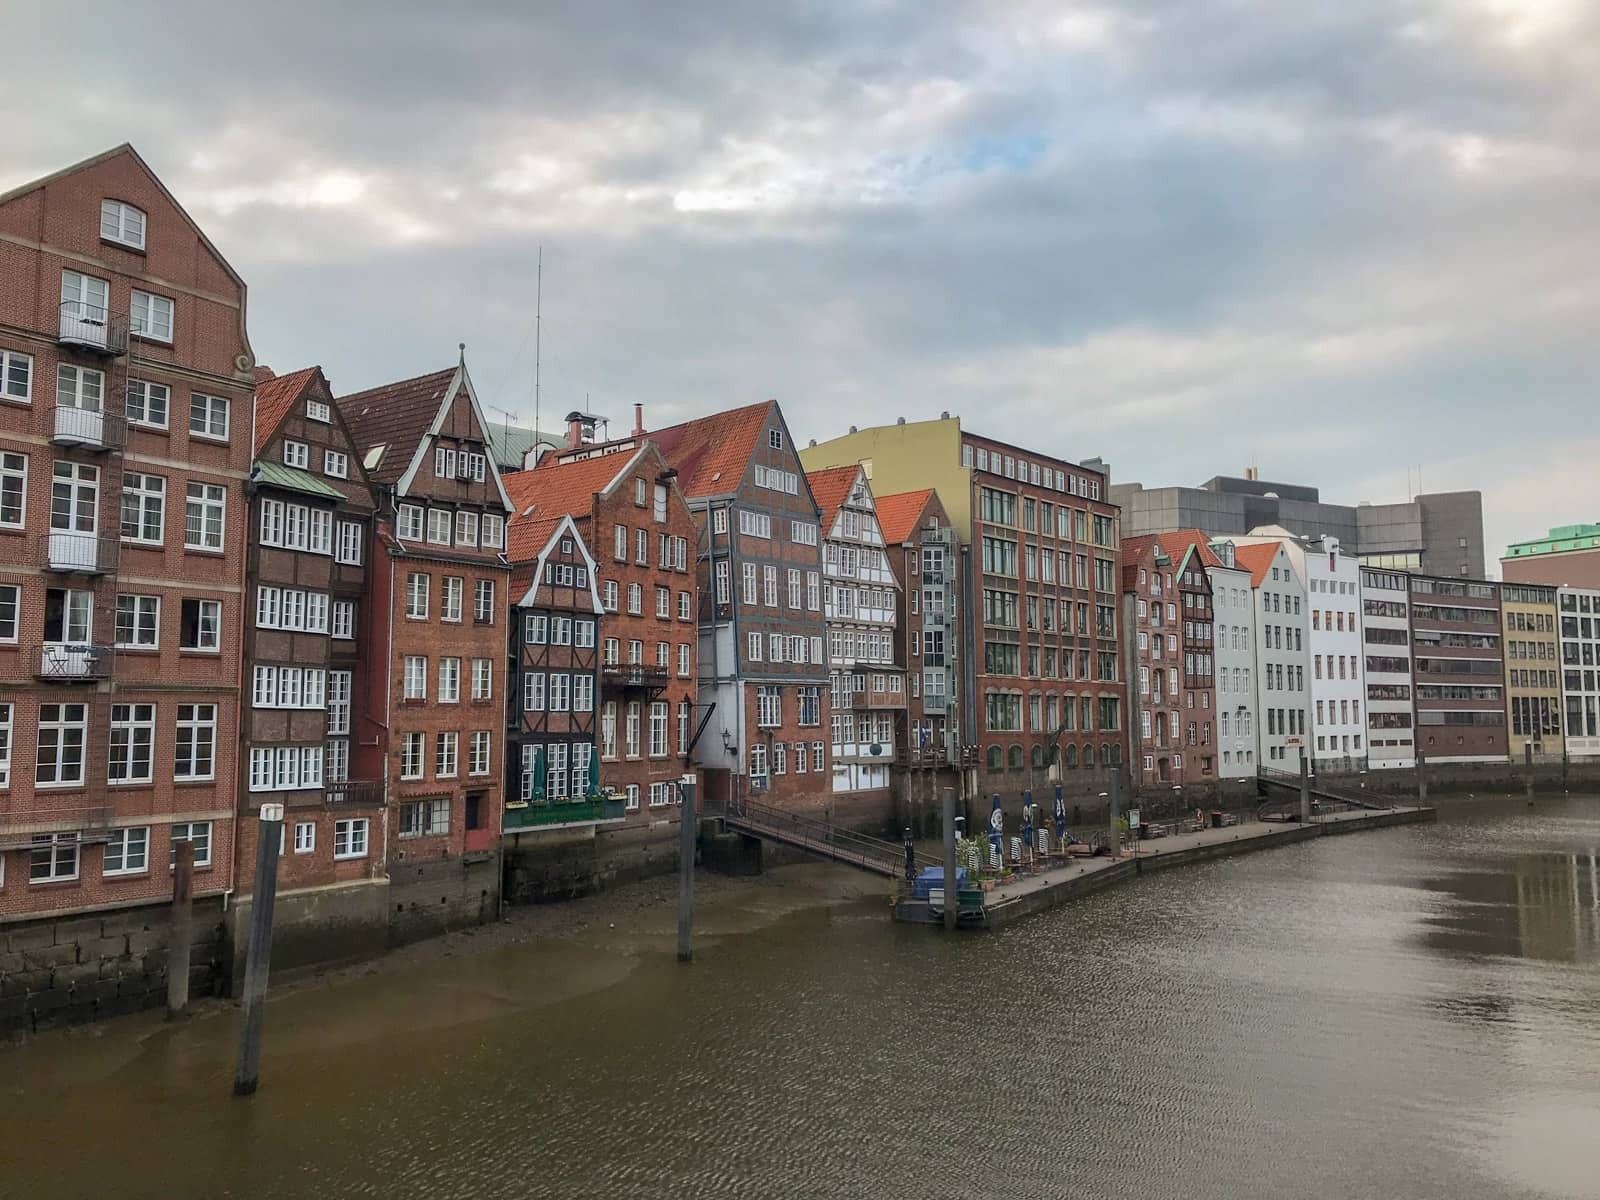 Some large, multi-storey terrace-like houses on the bank of a river, as seen from a distance across the river. It is quite a cloudy day.